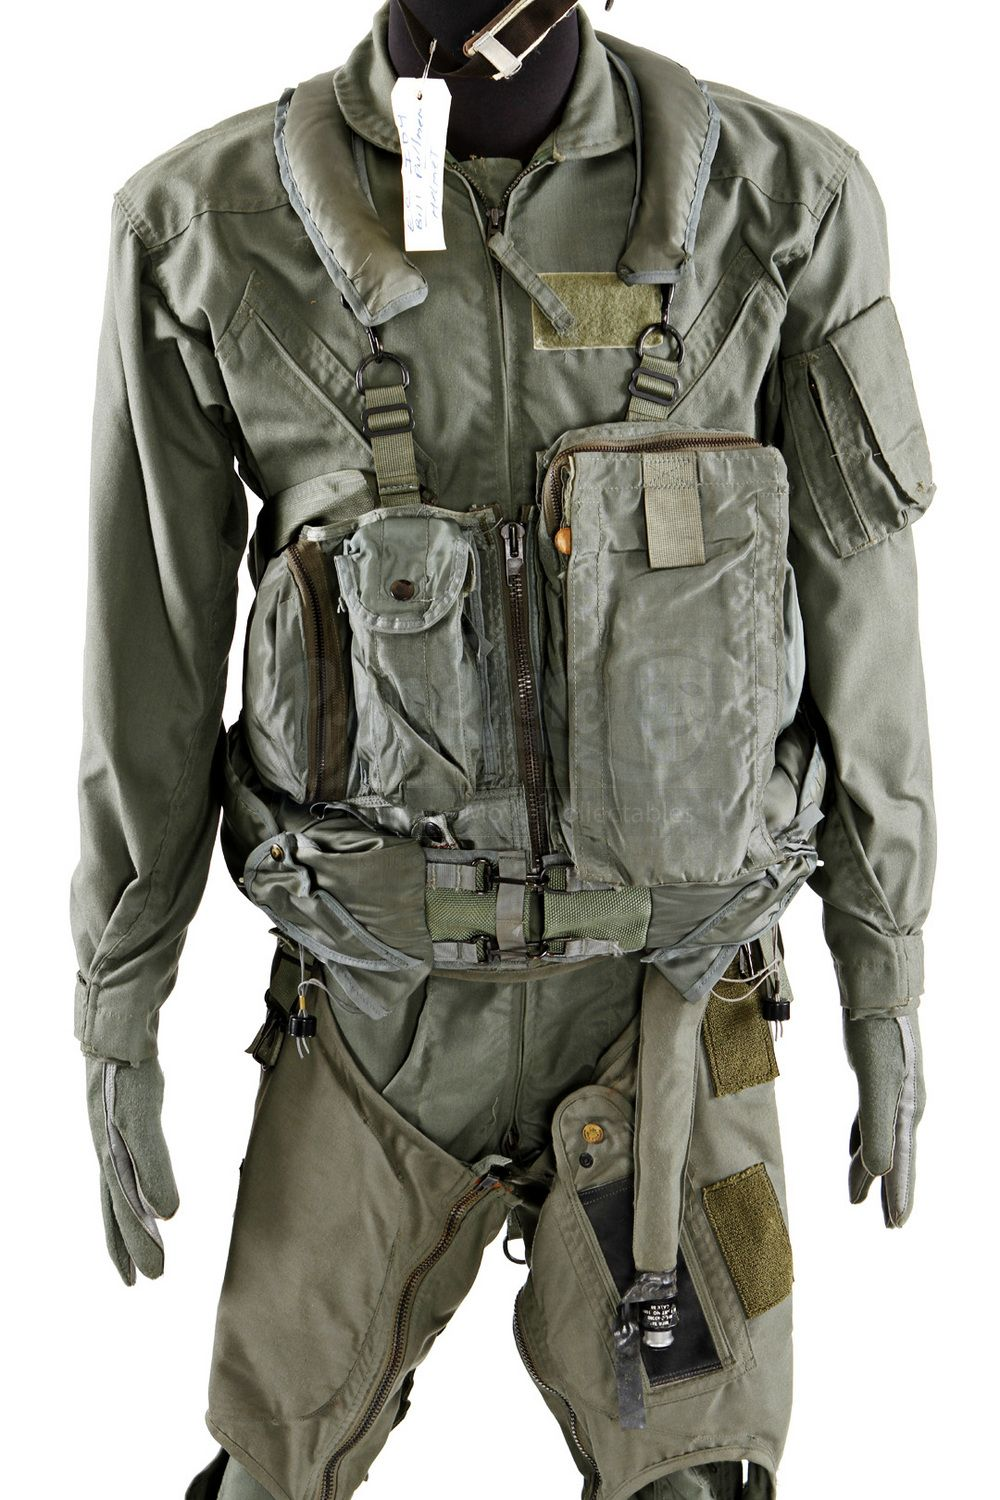 Flight Suit5 Jpg 1000 1500 Flight Suit Flight Suits Military Outfit